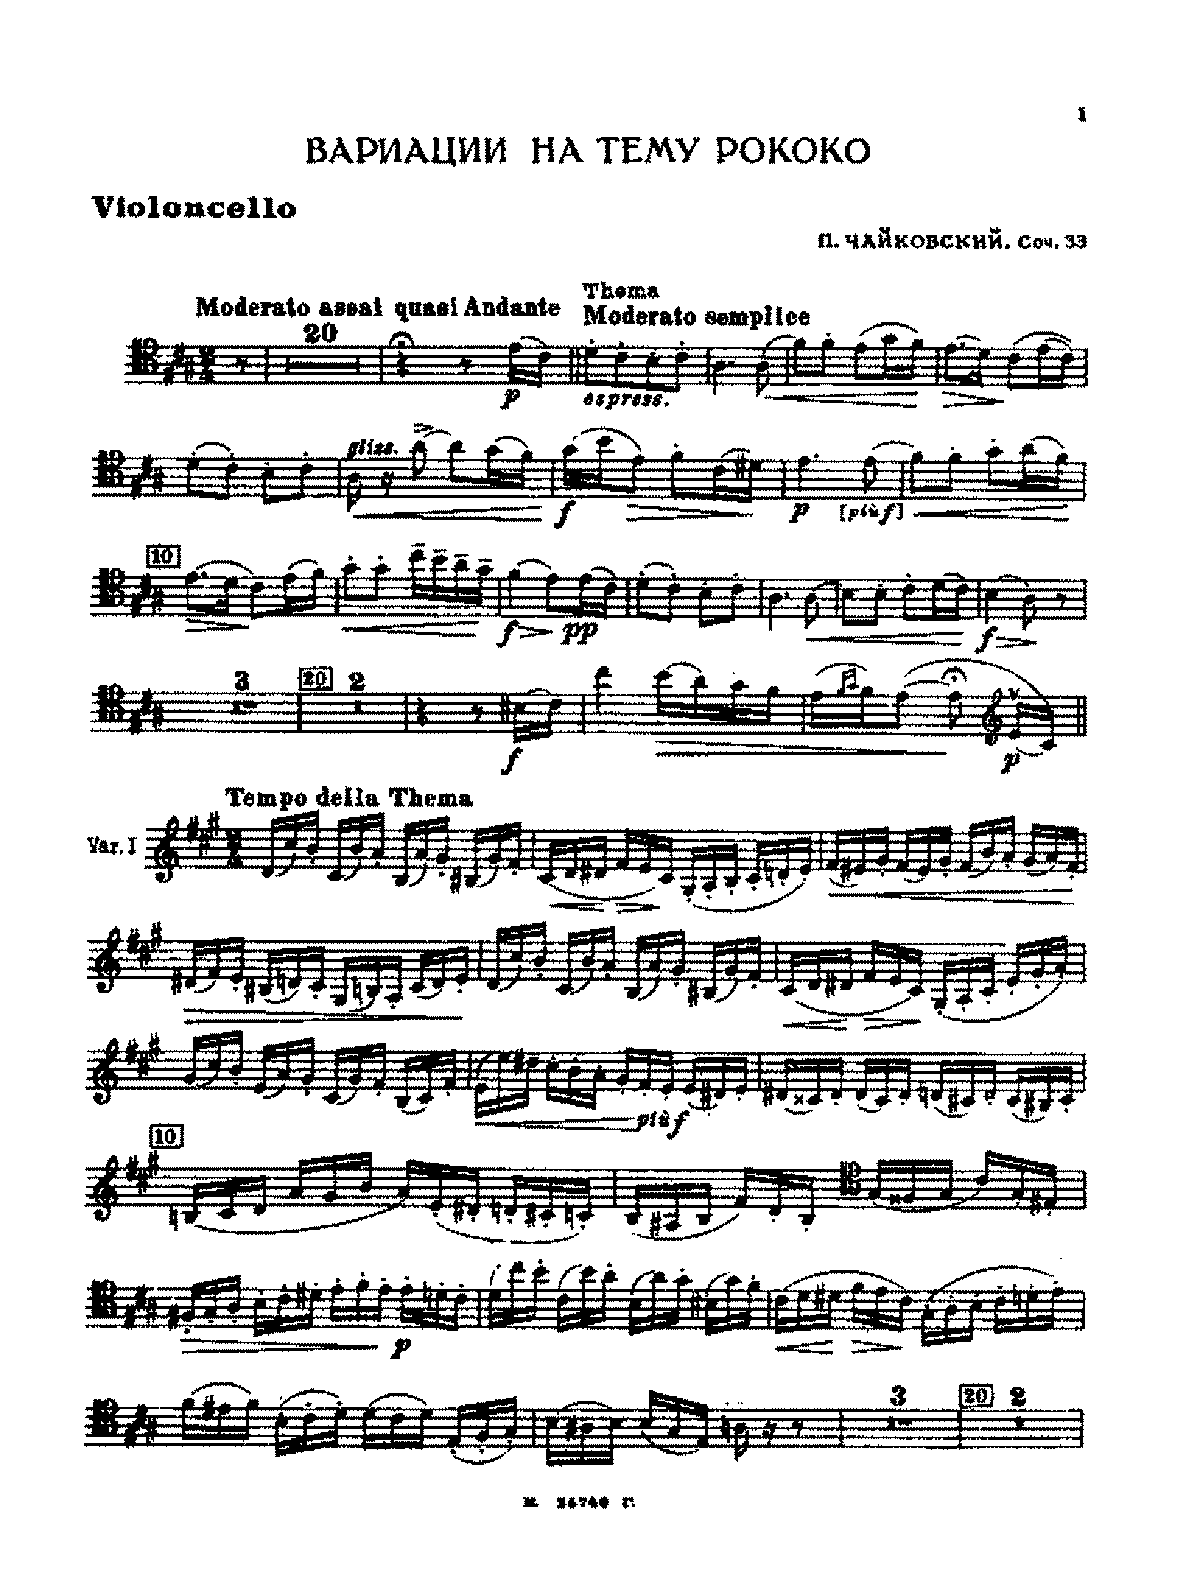 PMLP04622-Tchaikovsky - Variations on a Rococo Theme Op.33 (original version) cello part.pdf